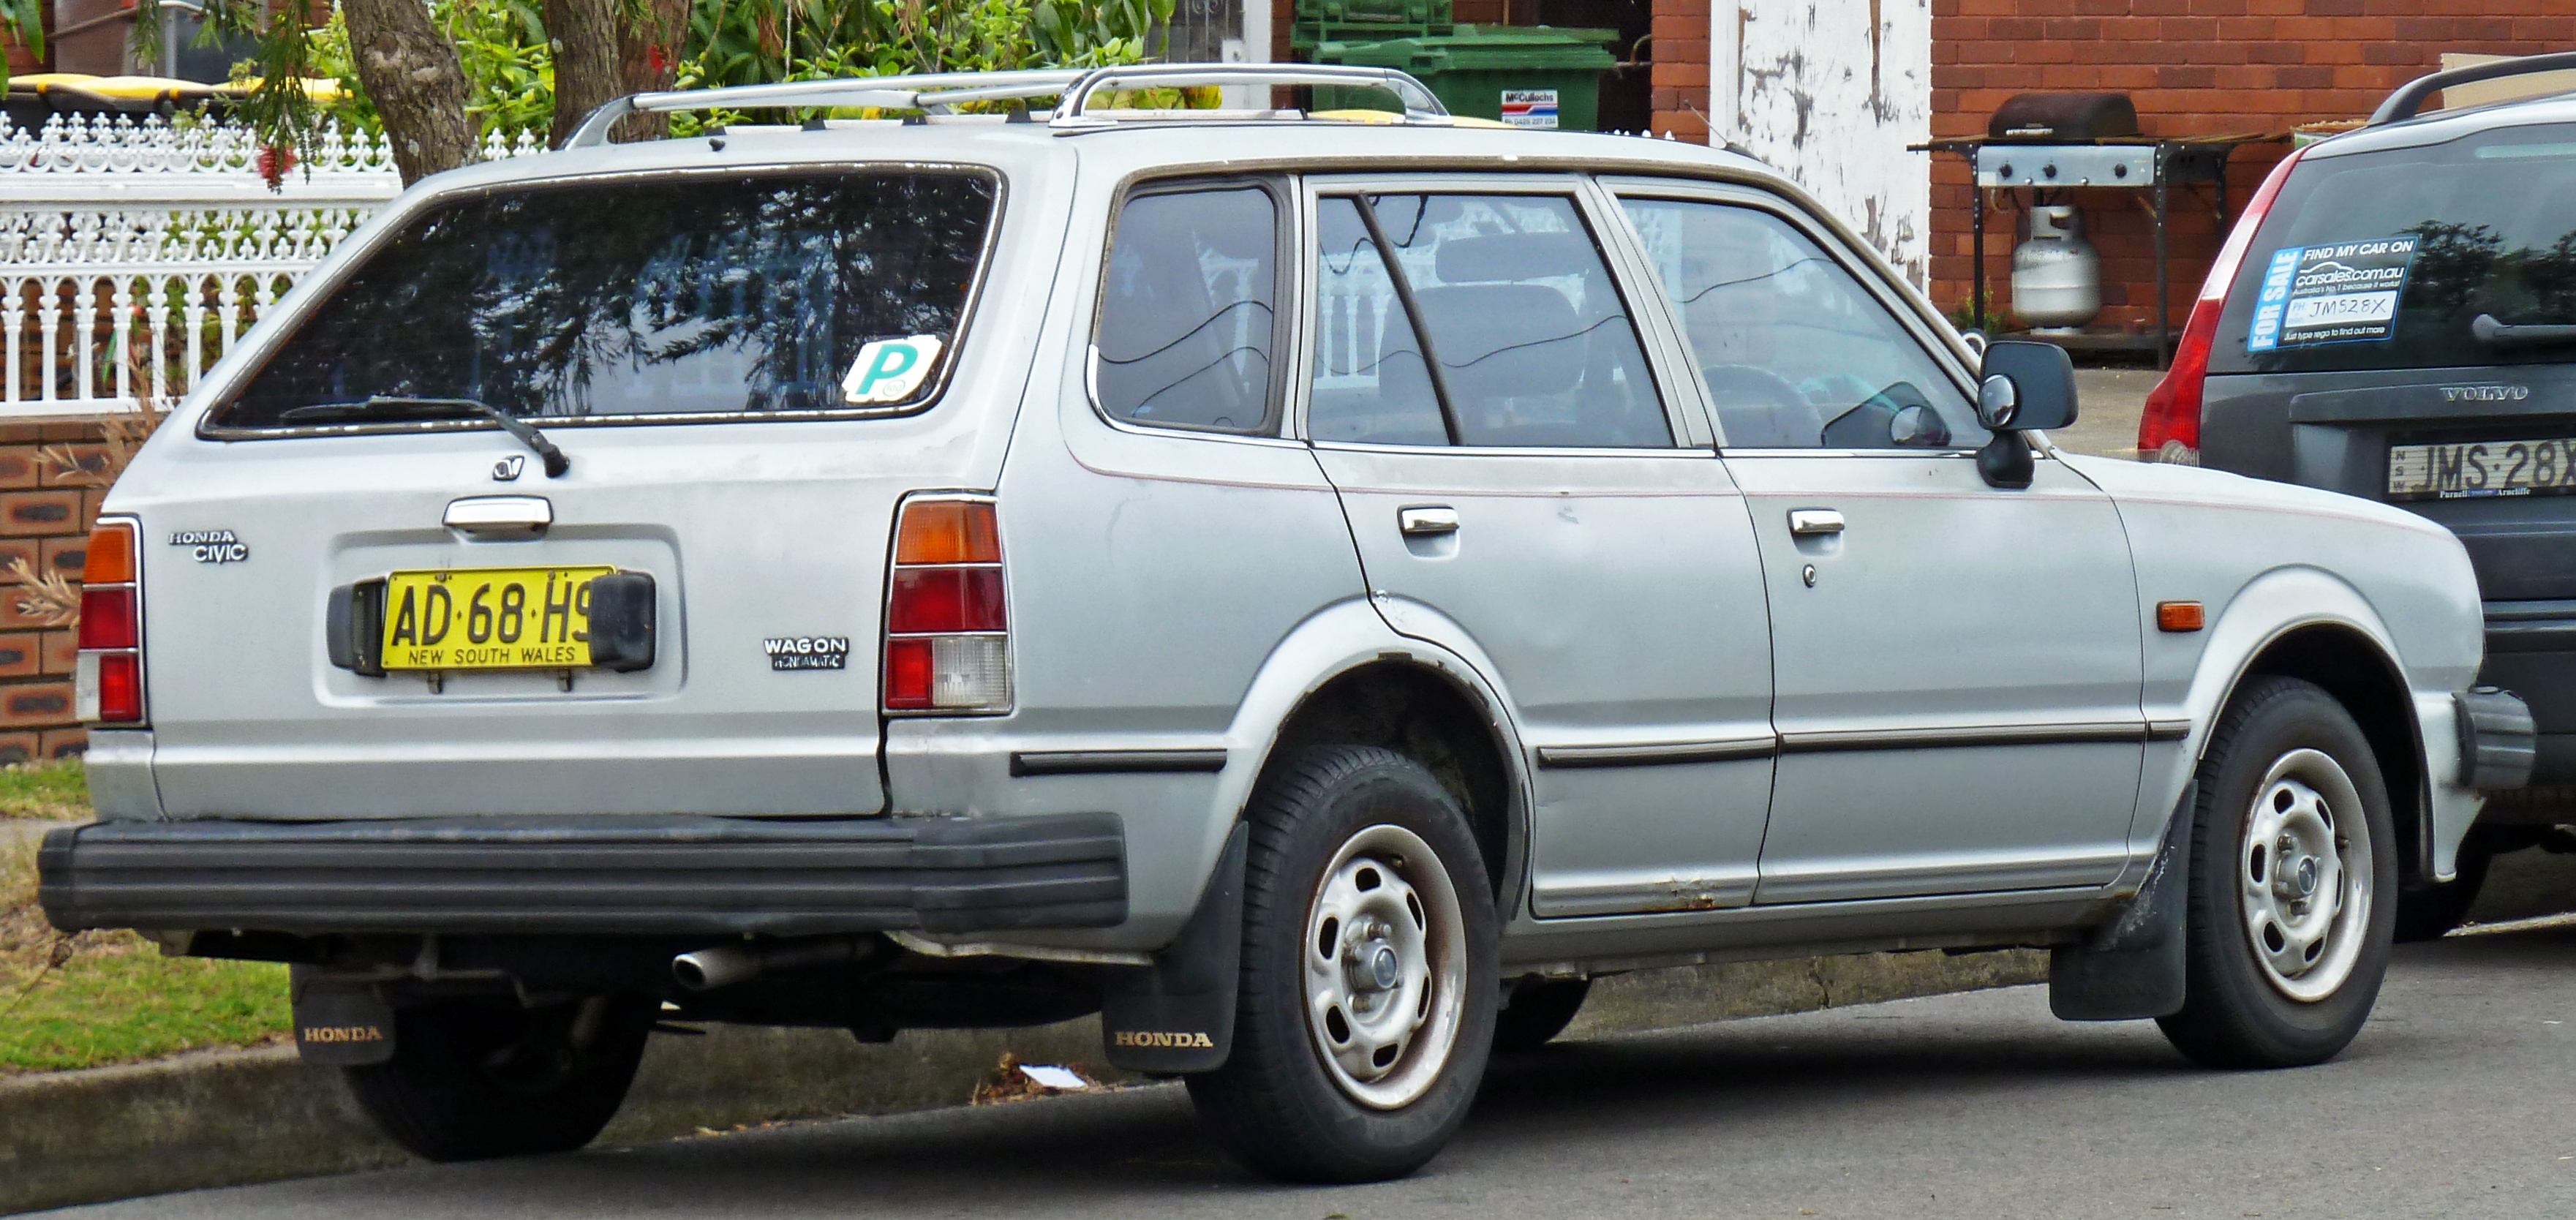 File:1981 Honda Civic Station Wagon (2010 09 23) 02.